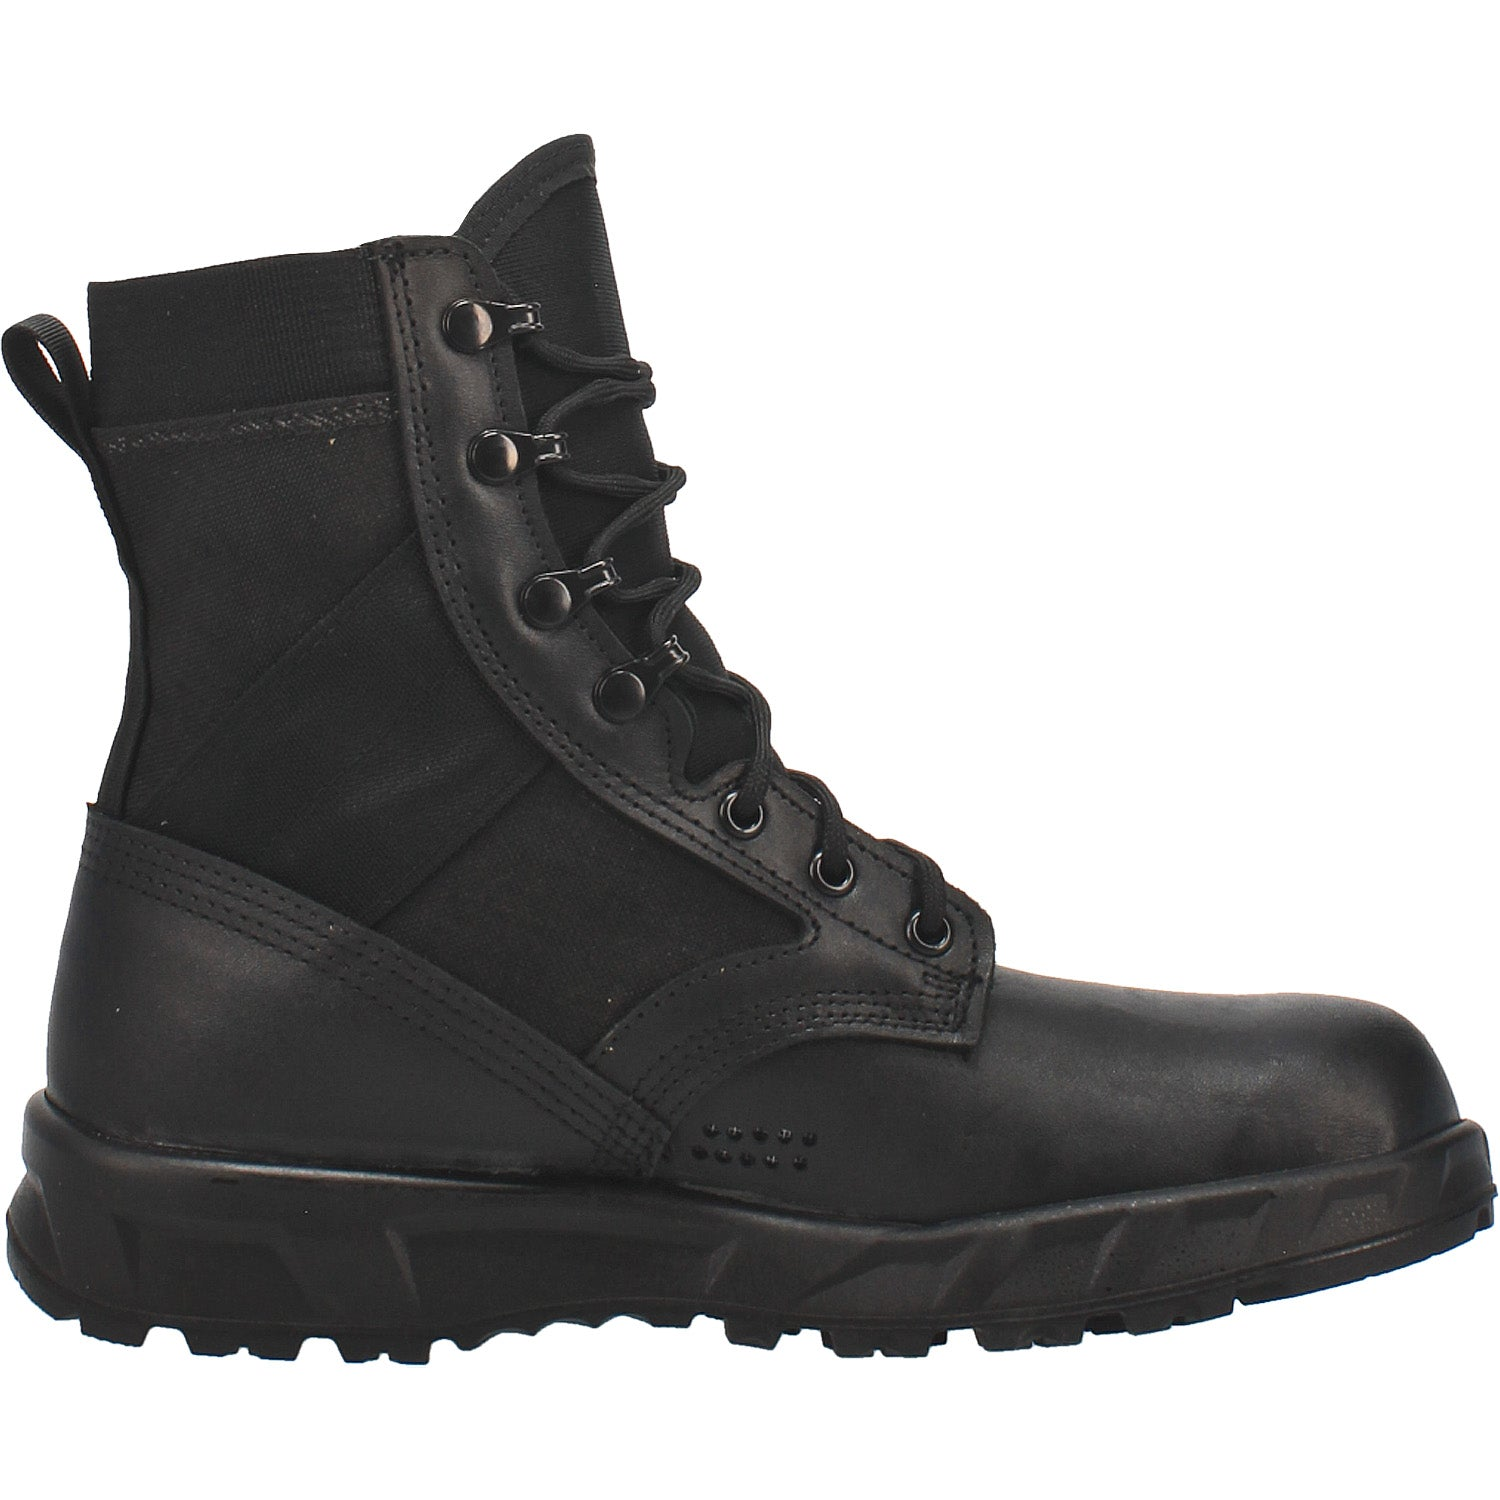 T2 Ultra Light Hot Weather Combat Boot 14940878536746